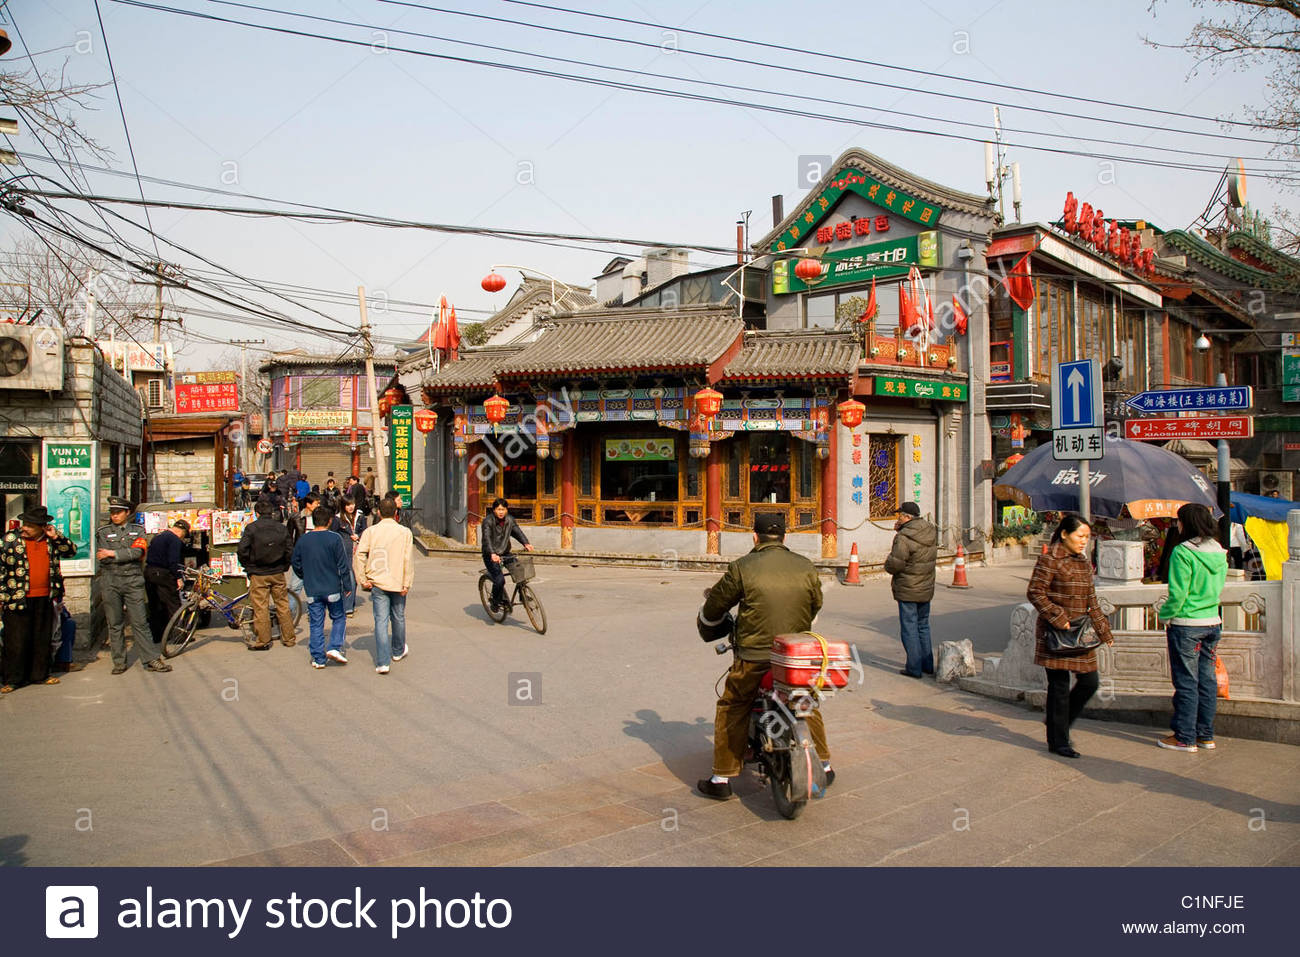 Beijing City, Shichahai, Hutong, Dongcheng District, China Stock Photo